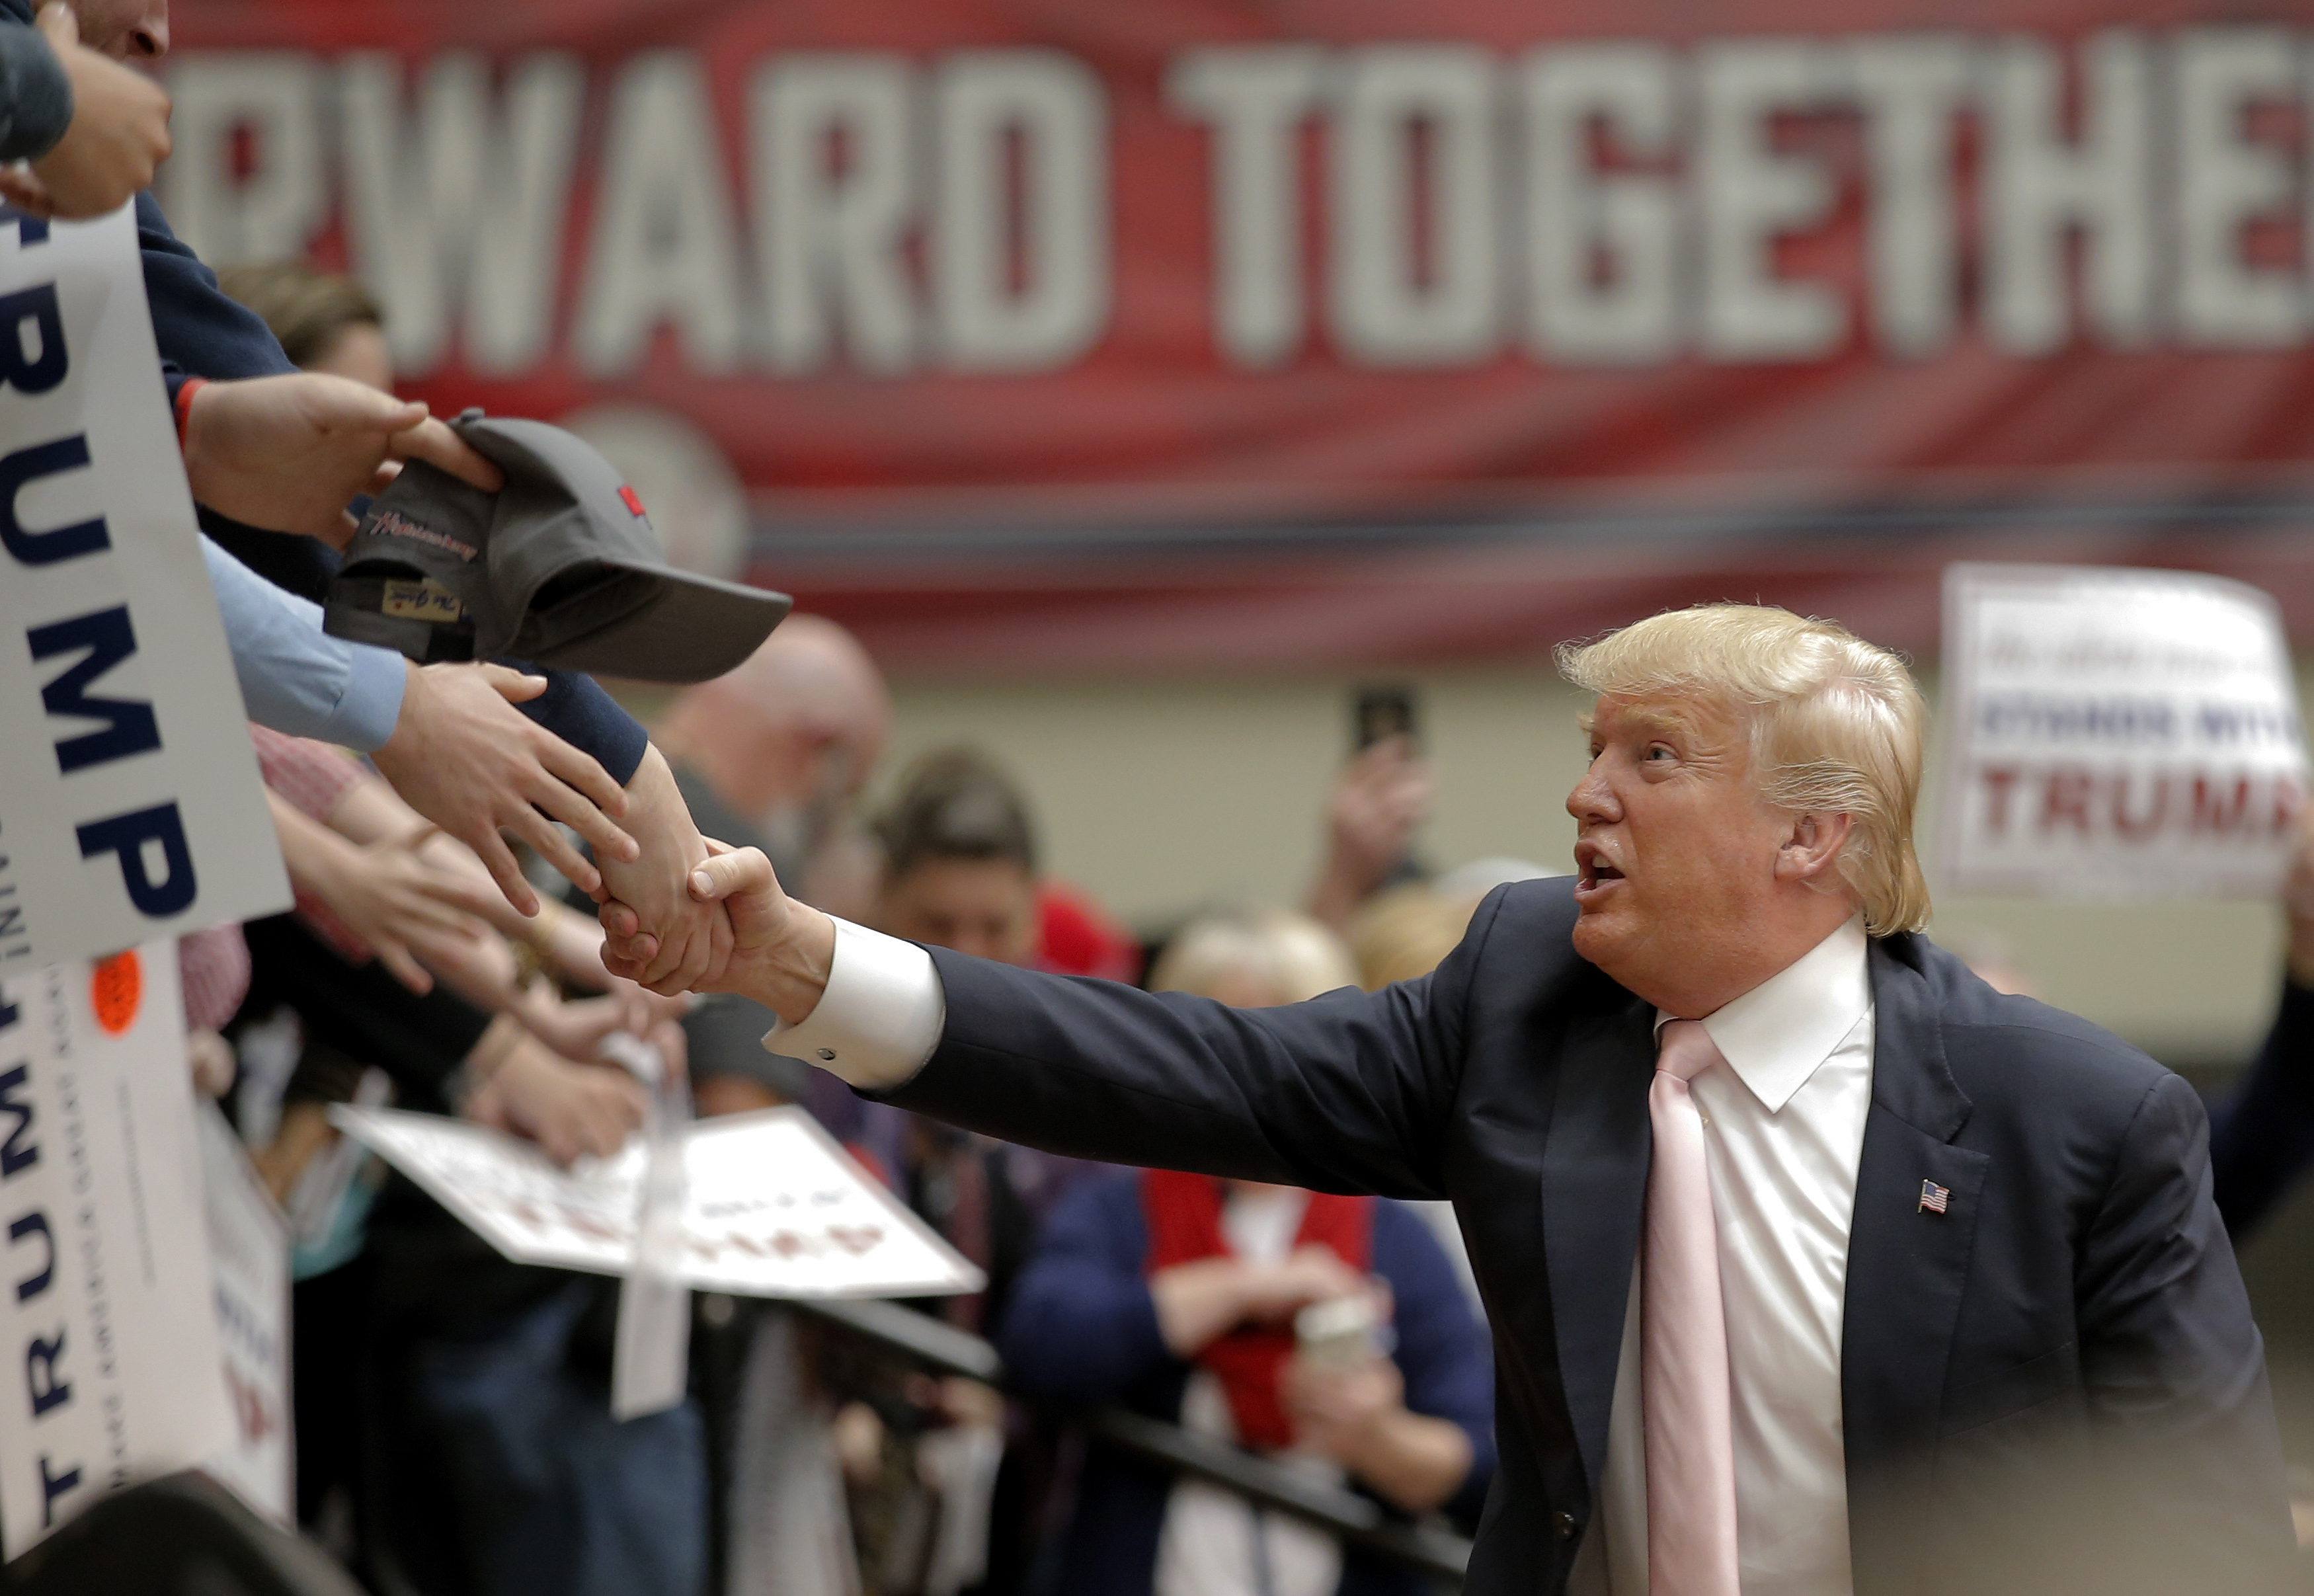 Republican presidential candidate Donald Trump shakes hands with supporters following a campaign event in Radford, Virginia. Photo by Chris Keane/Reuters